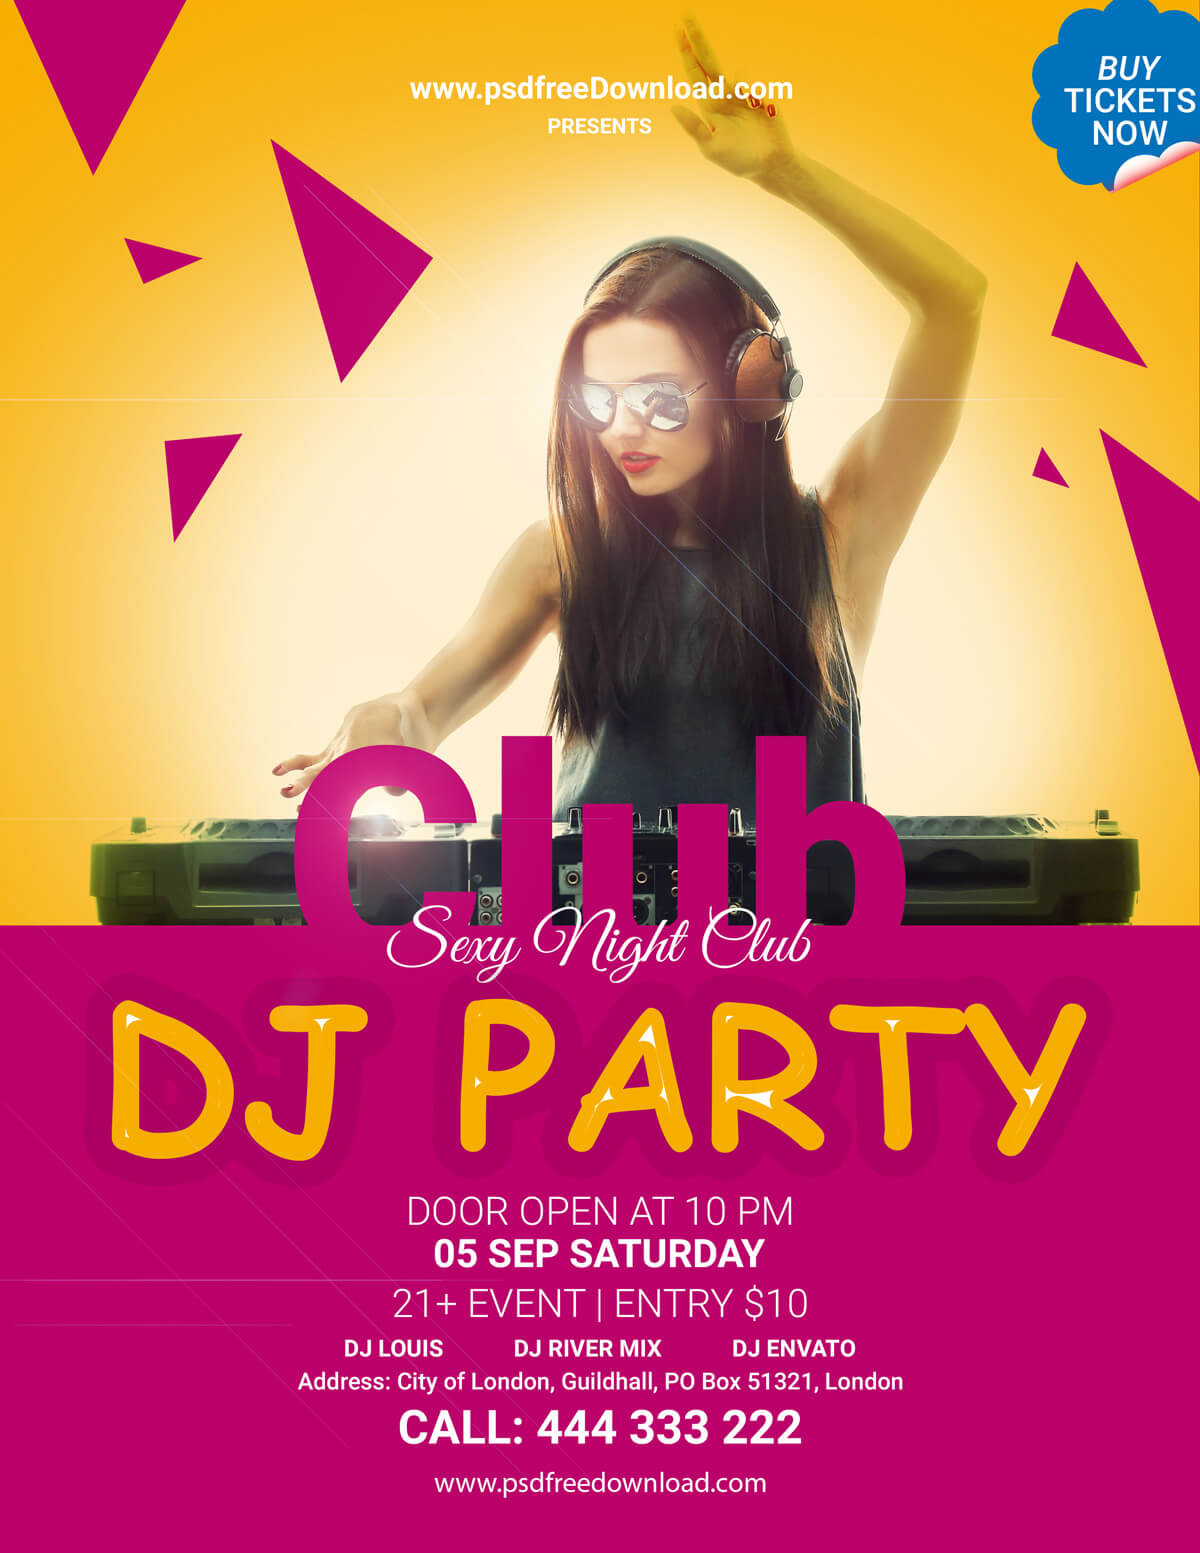 Free DJ Party Flyer Template - PSD Free Download